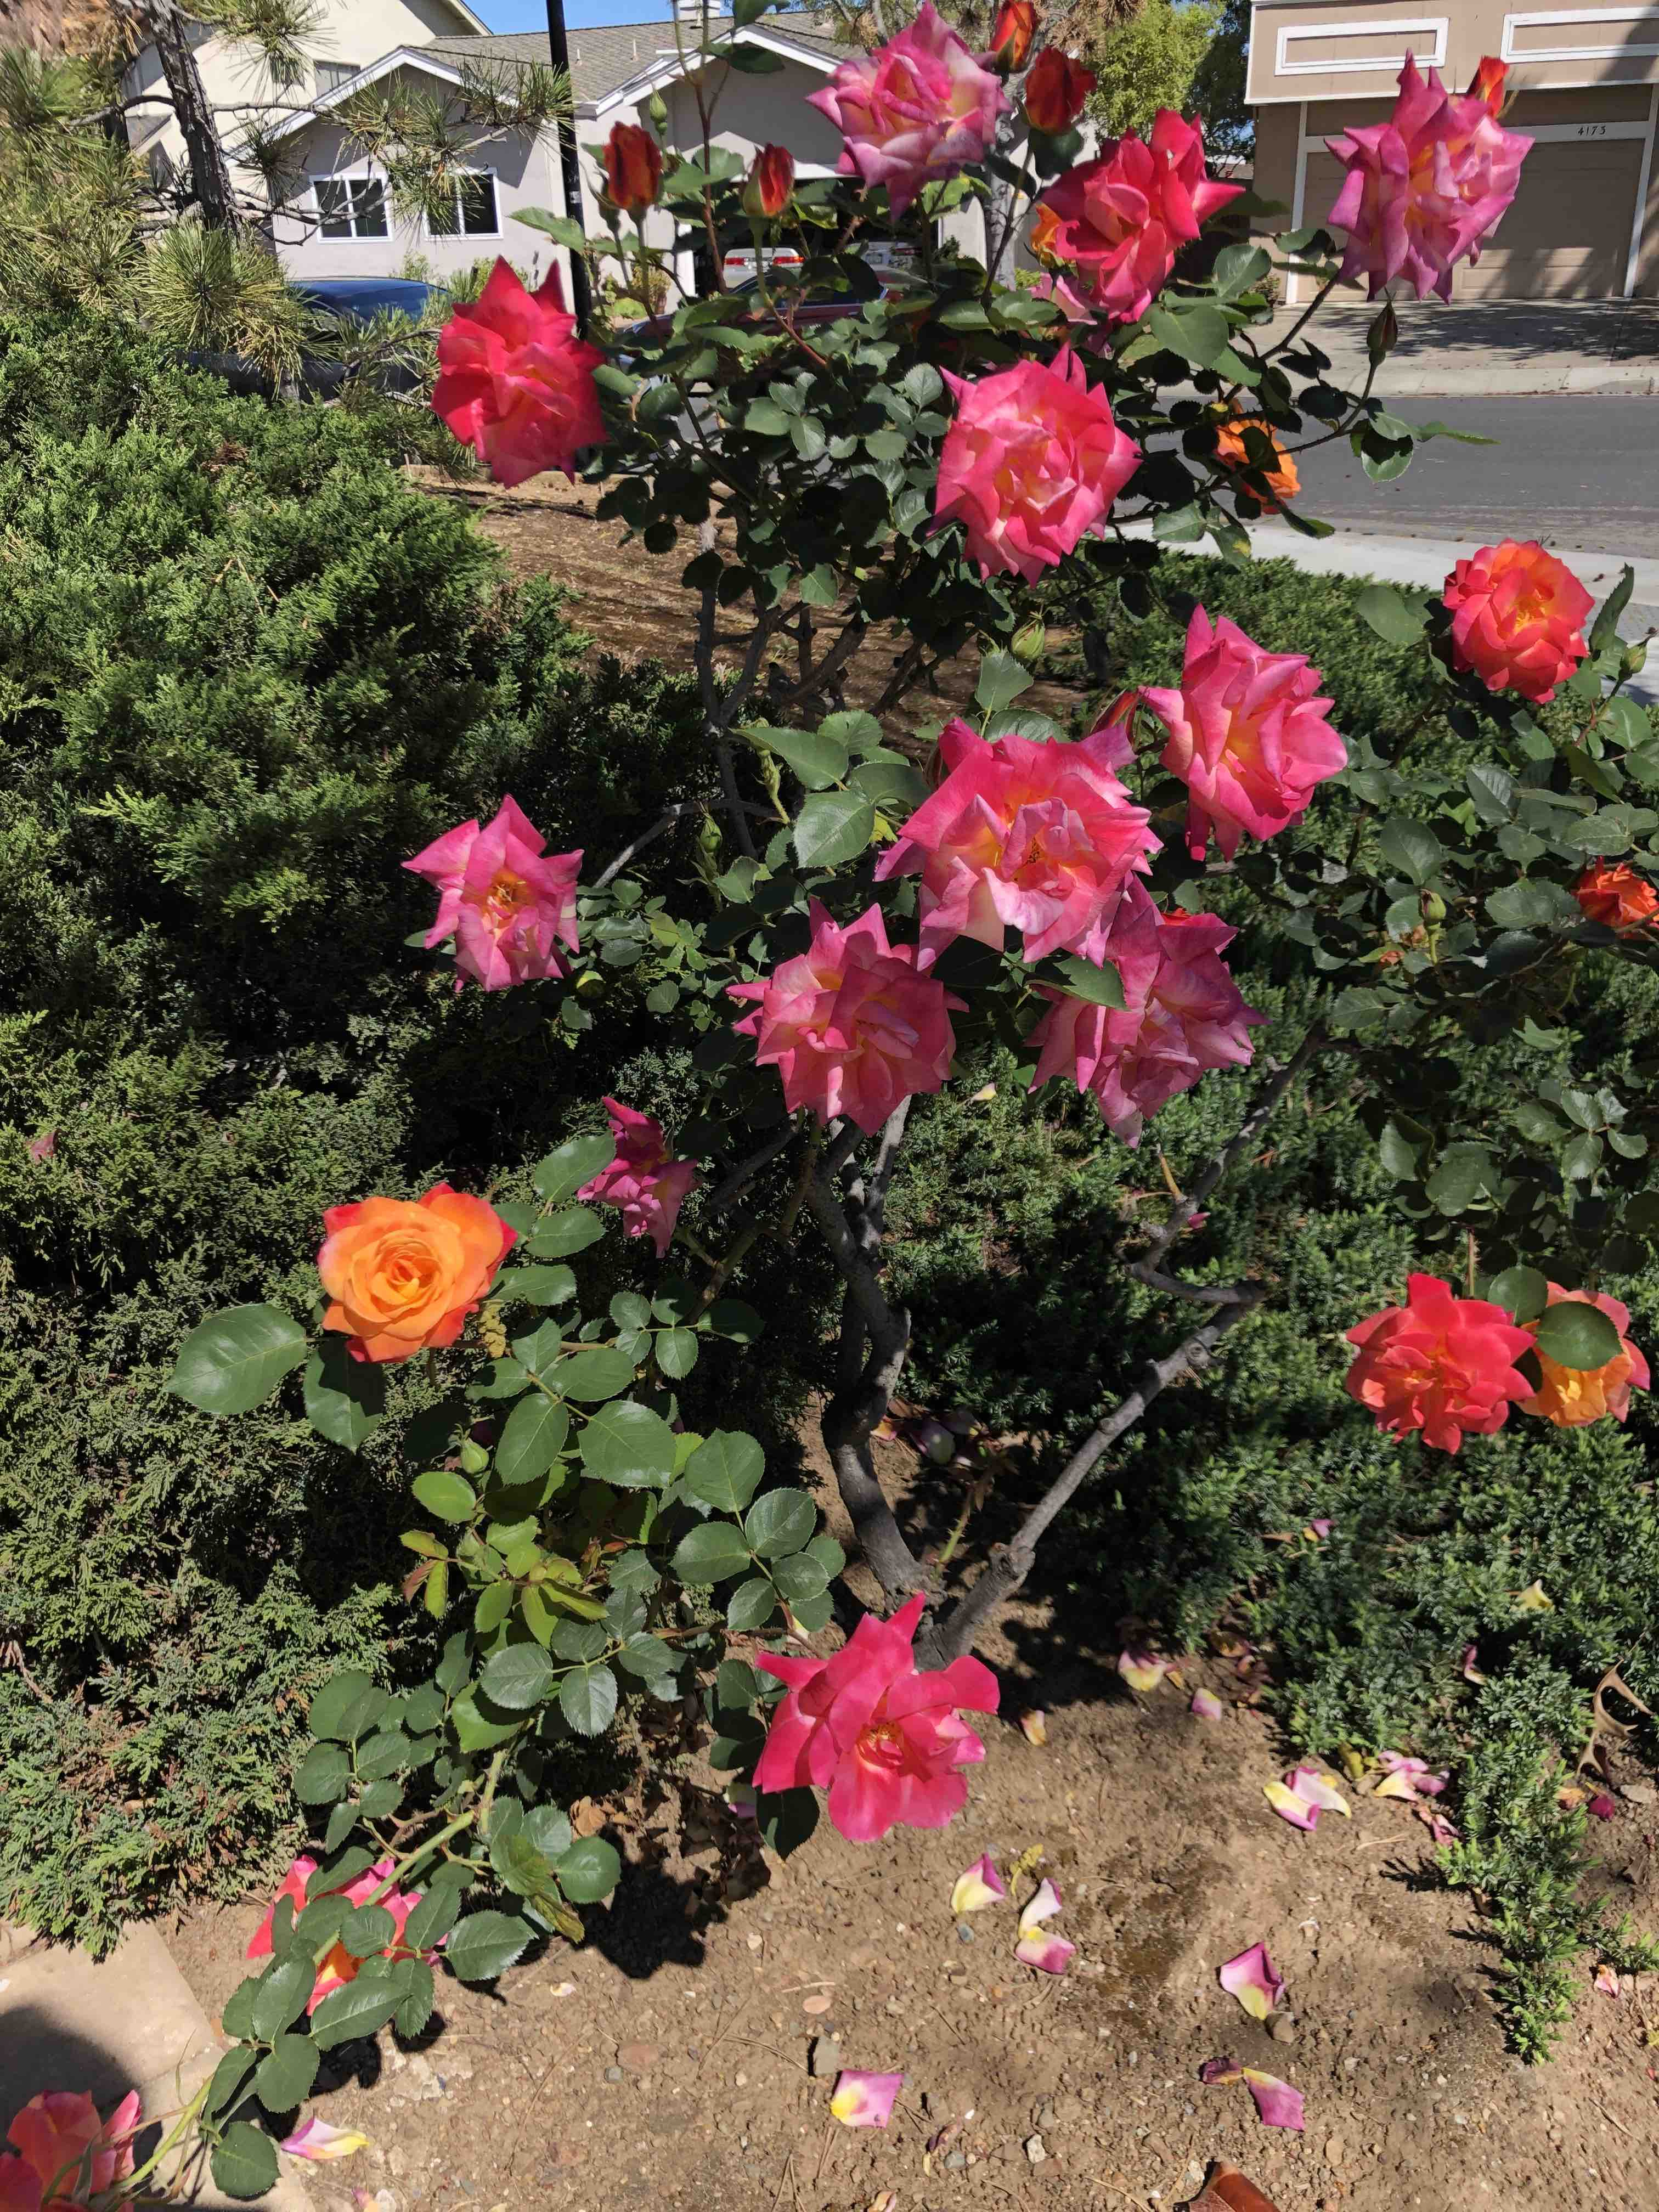 Rose bush with mostly dark pink flowers, but oddly one or two orange ones.